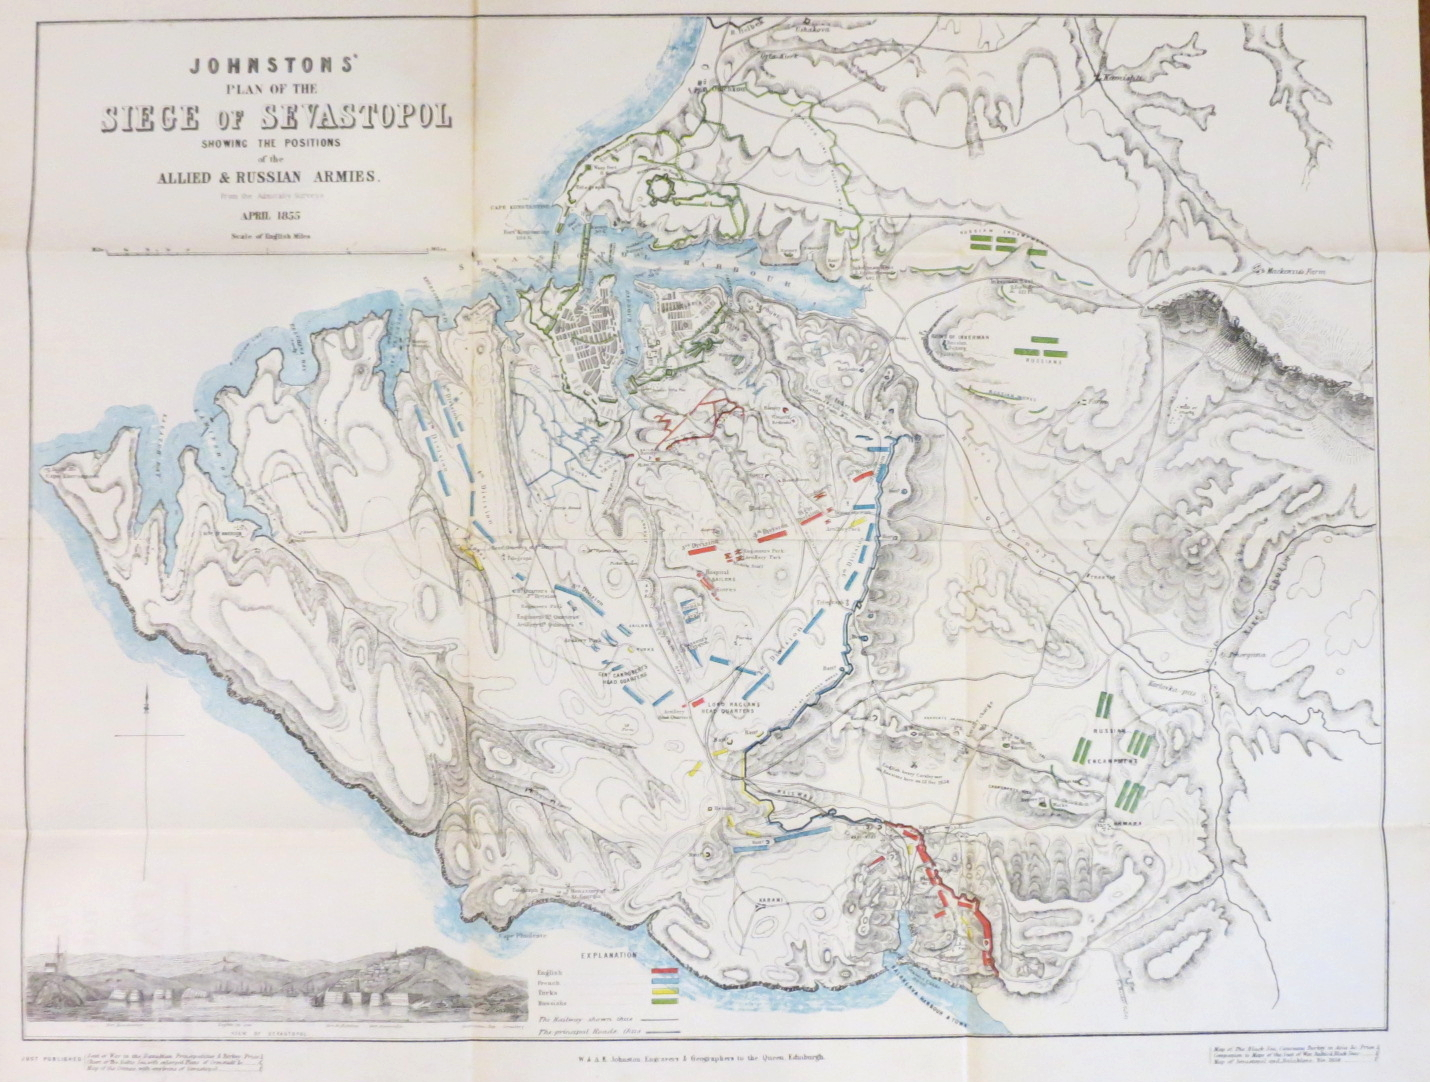 johnstons atlas of the war 1855 comprising johnston s new map johnstons atlas of the war 1855 comprising johnston s new map of the seat of war in the danubian principalities and turkey johnston s chart of the